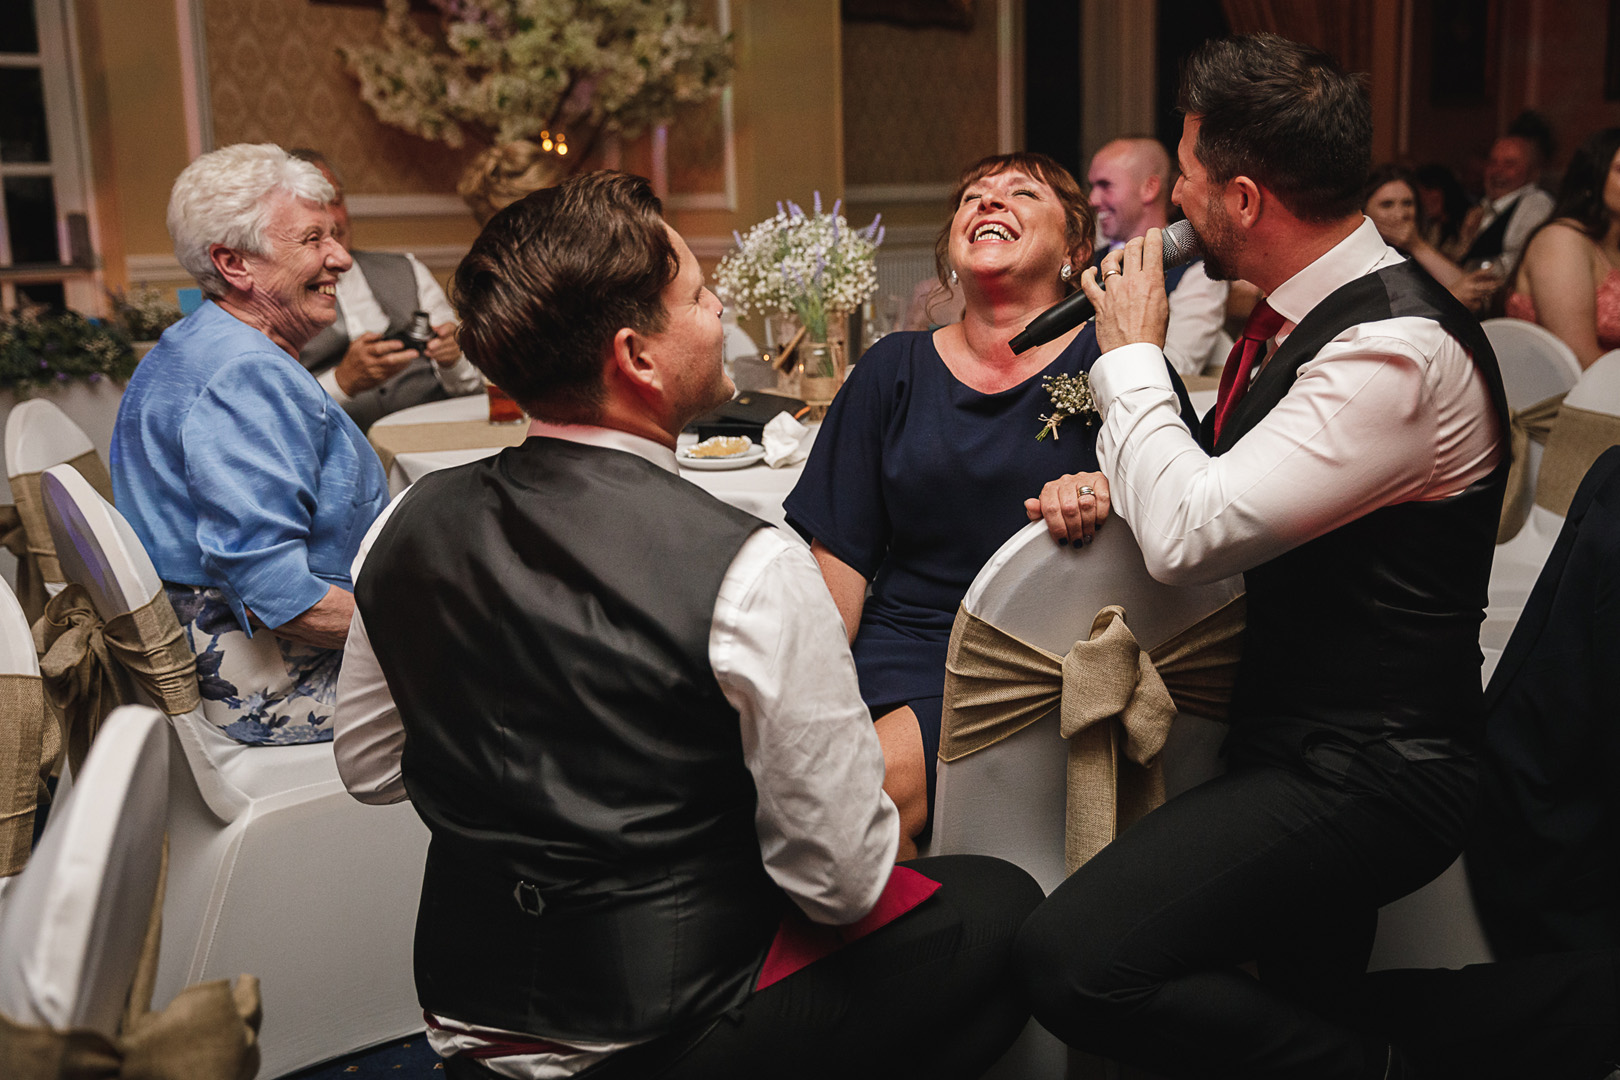 The Undercover Waiters serenading the brides mum at west retford hotel wedding